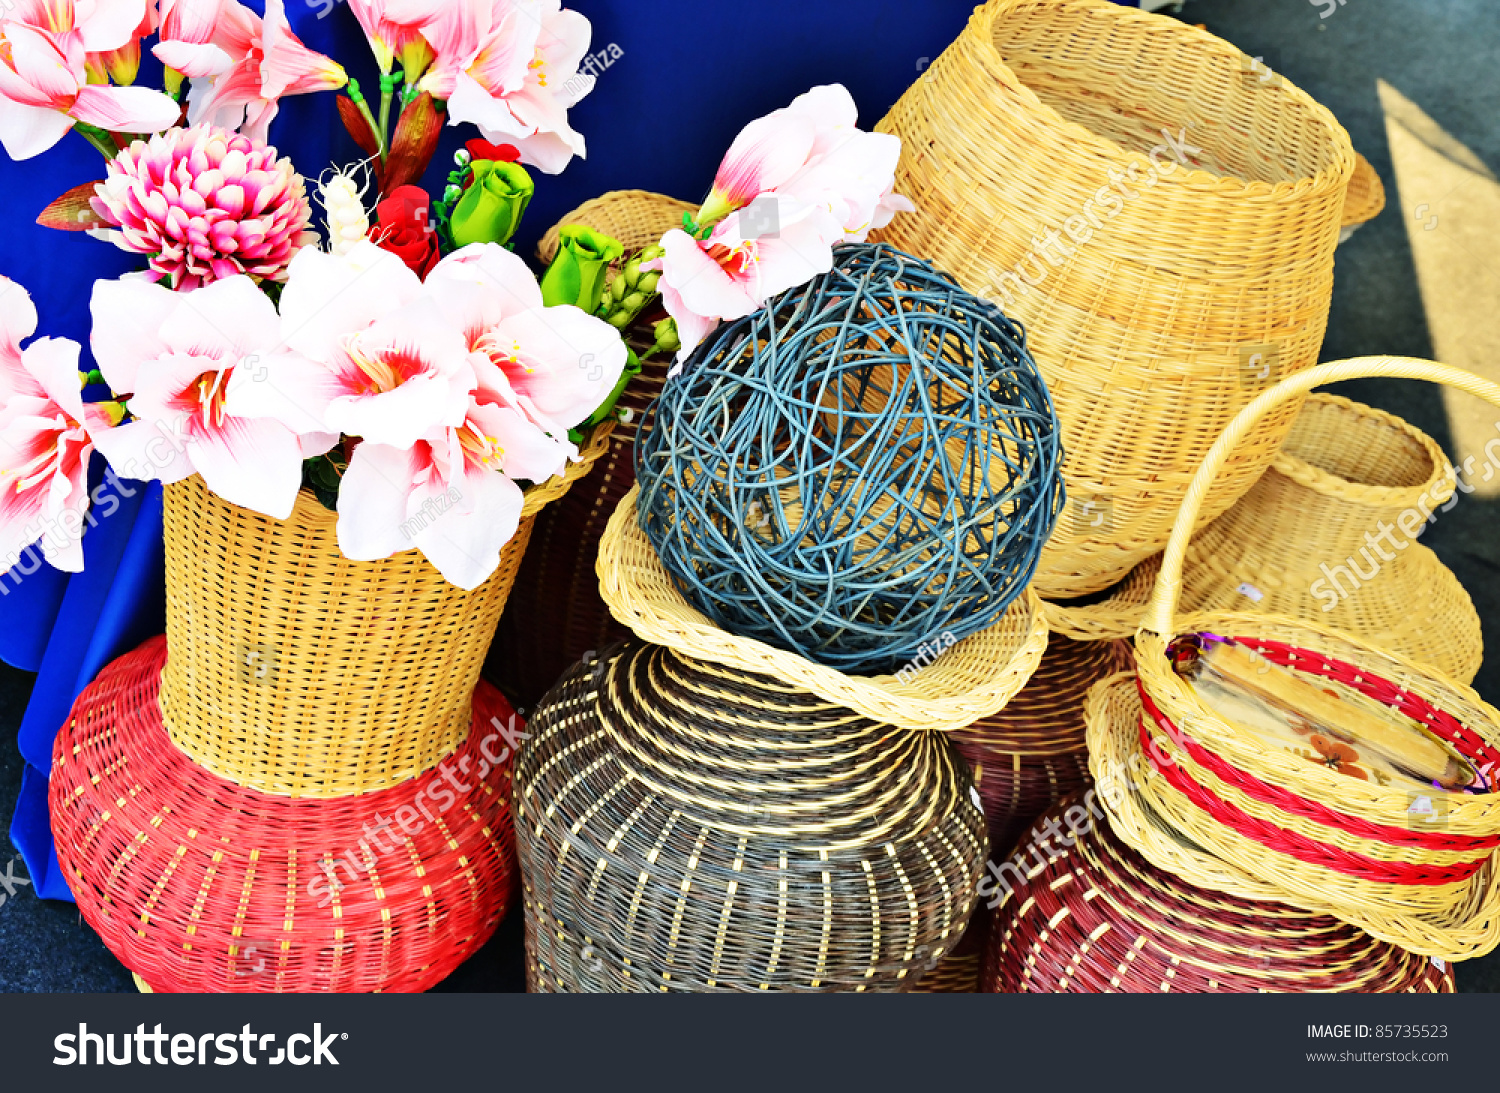 Various Shaped Basket Hand Craft Work For Decoration Stock Photo 85735523 Shutterstock